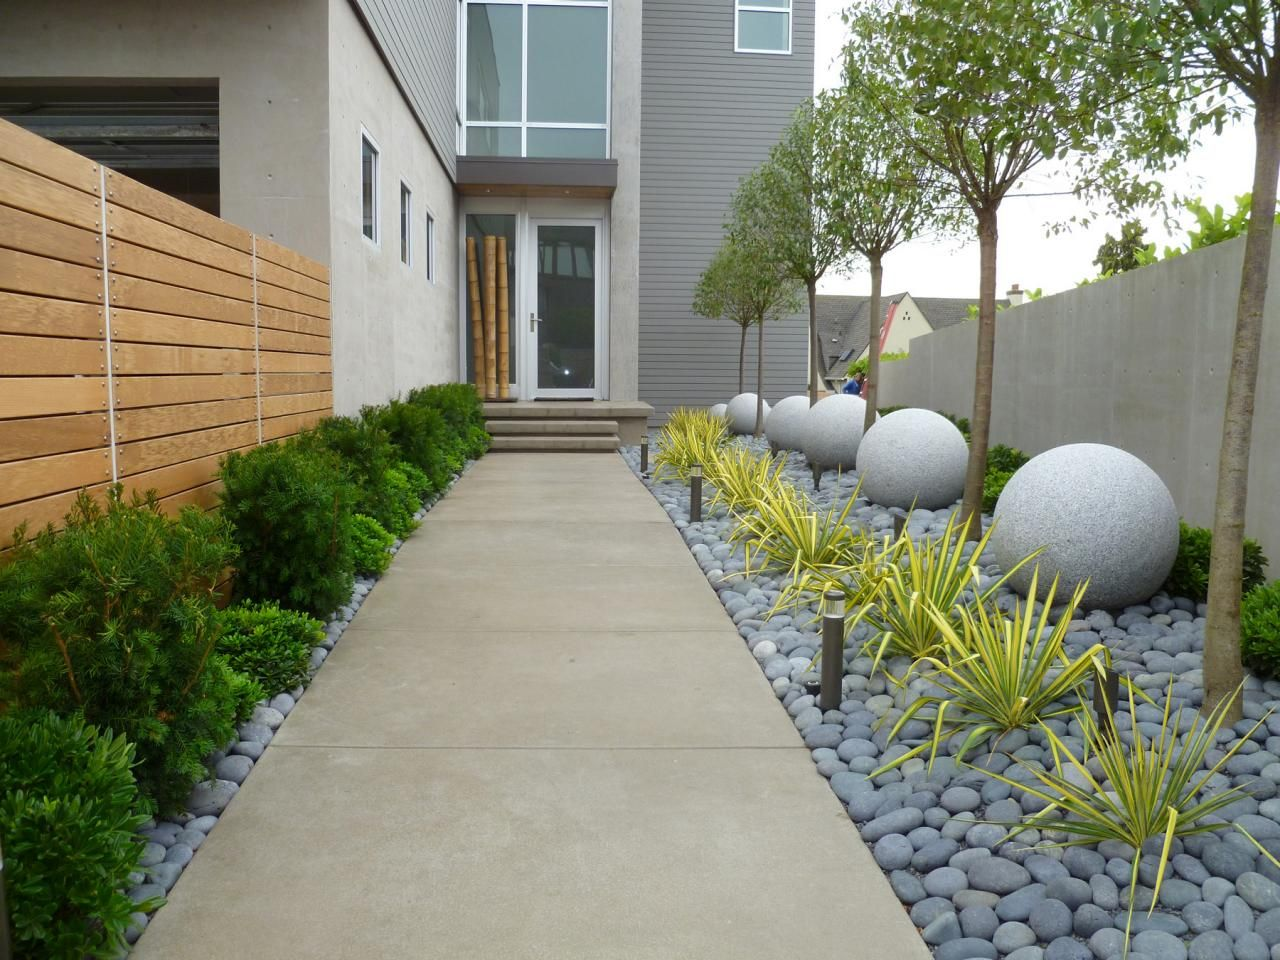 walkway designs for homes. Walkway to Contemporary Home Lined With Neat Landscaping  Dog